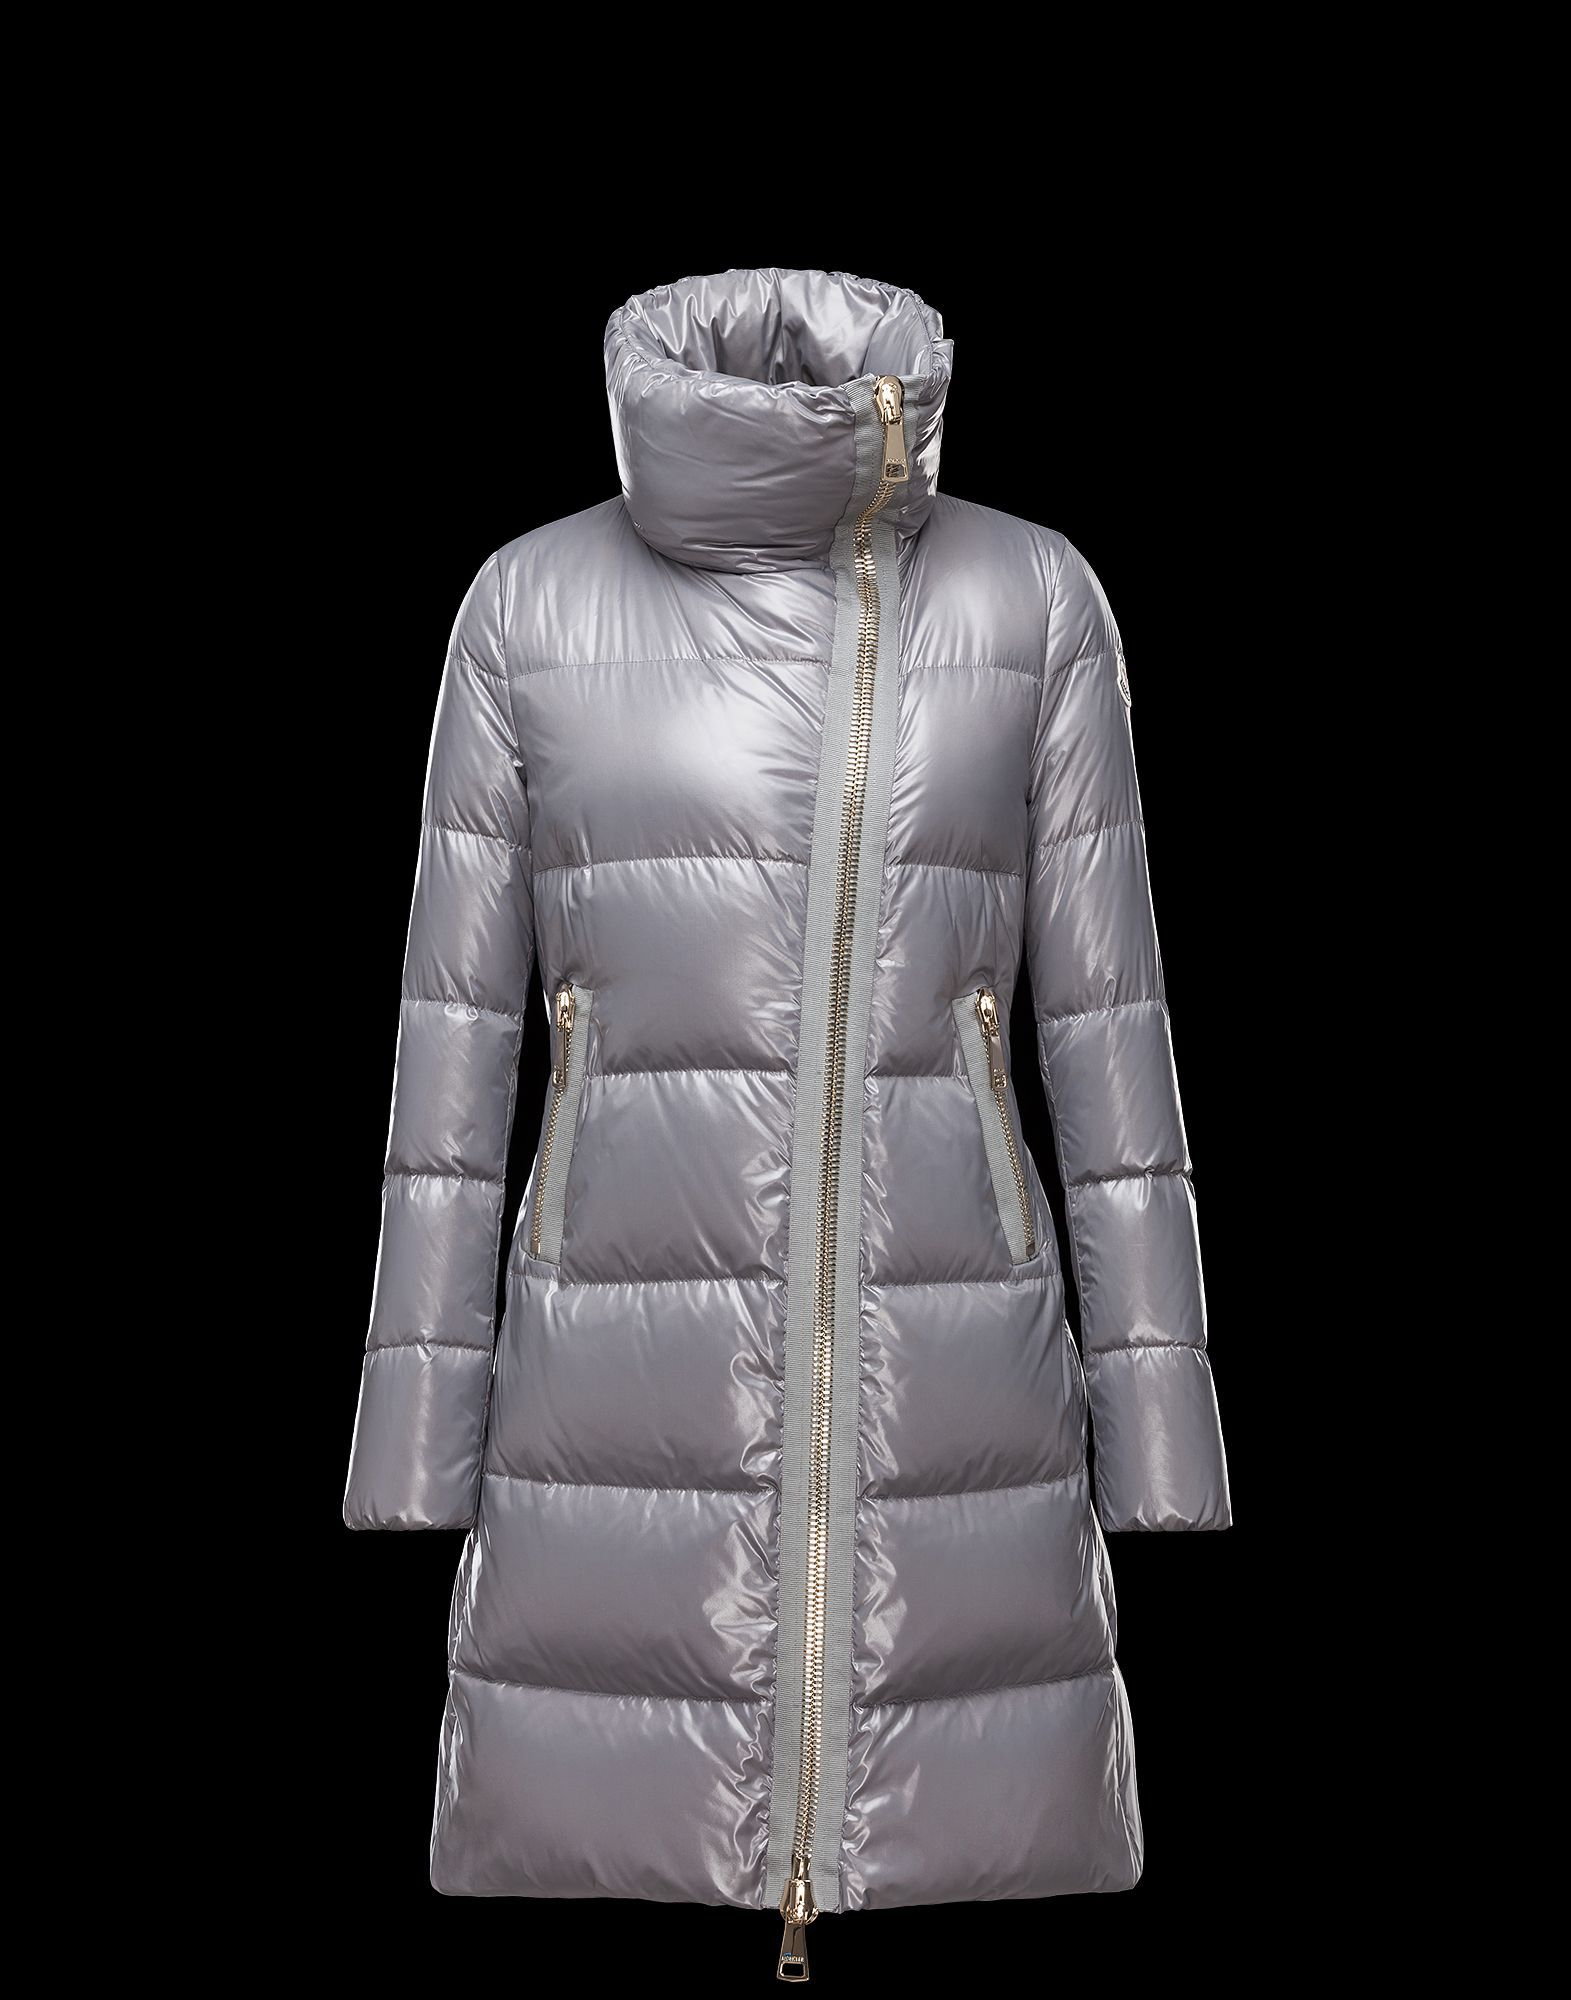 Clothing And Down Jackets For Men Women And Kids Moncler Outerwear Women Moncler Jacket Moncler [ 2000 x 1571 Pixel ]